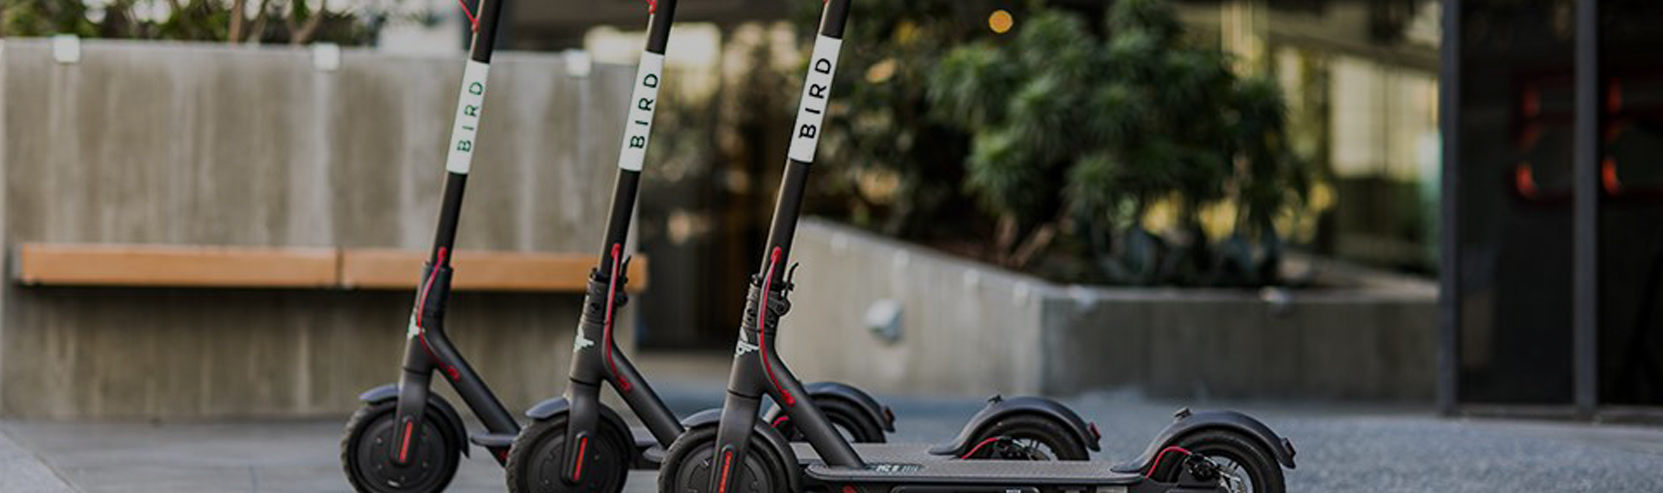 Electric scooters in Paris – Lodgis Blog